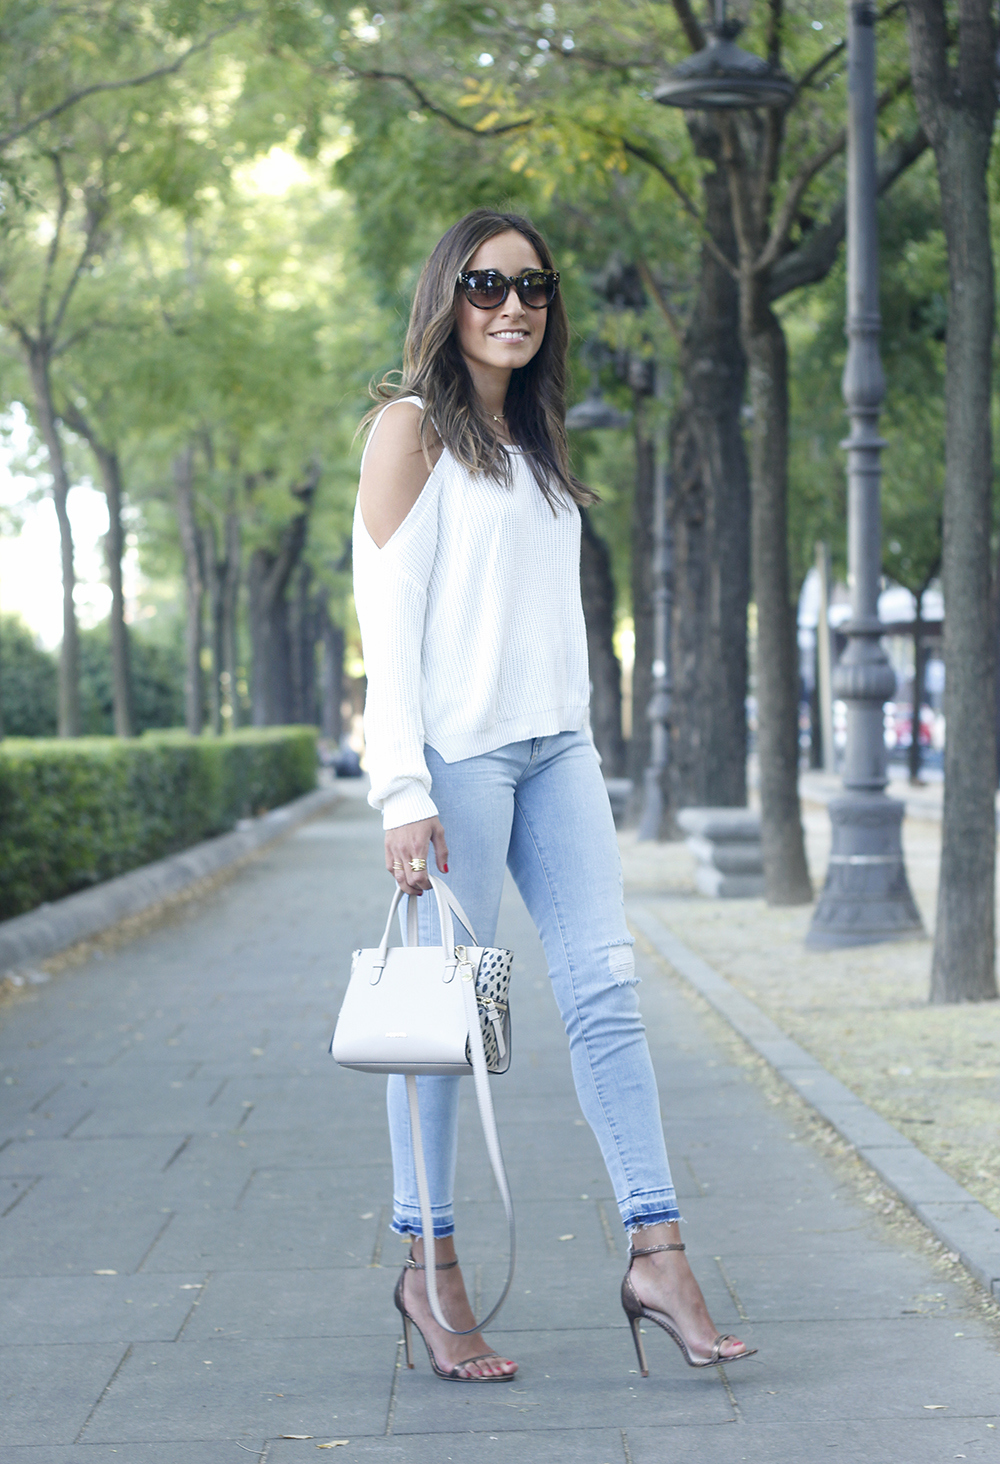 White off the shoulder sweater jeans acosta bag heels outfit style09